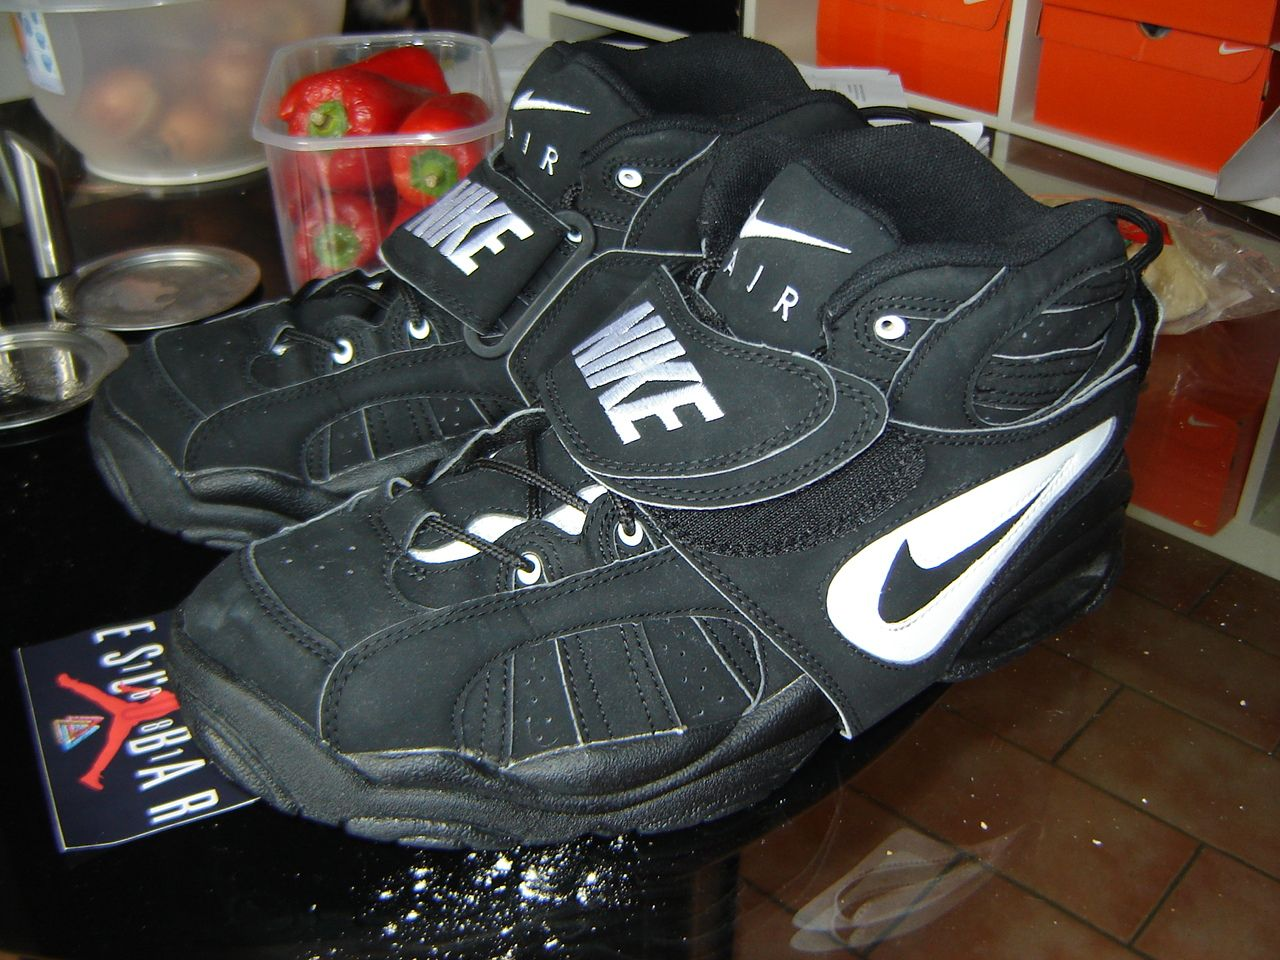 sports shoes b8c0f 3bbe8 ... Nike Air Modify - 1996 ...